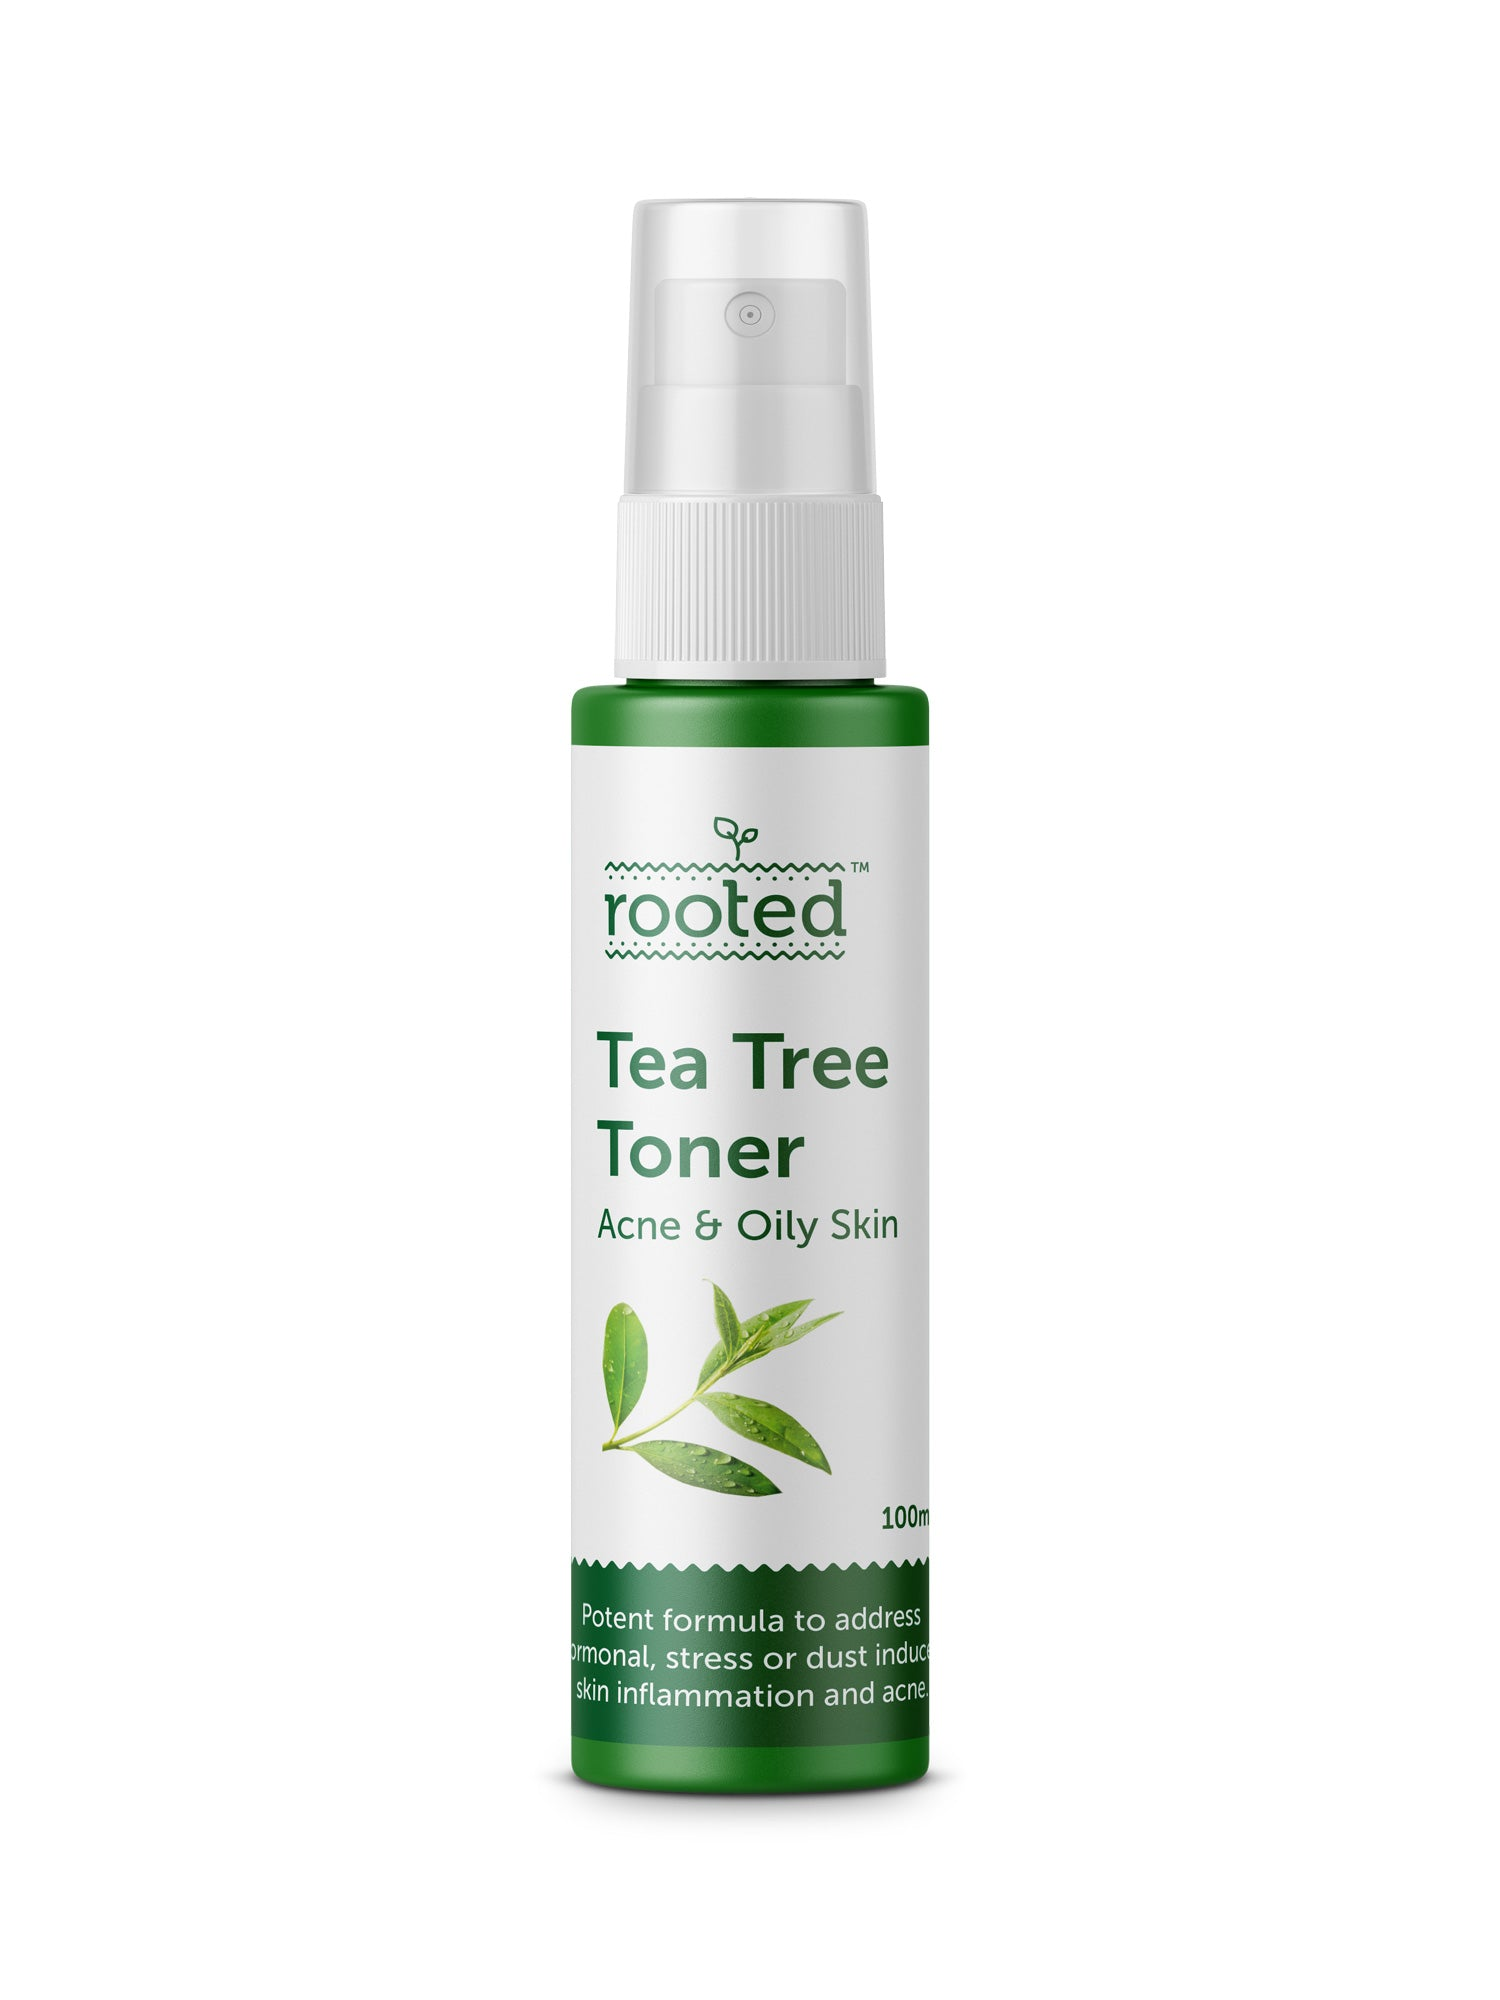 Tea Tree Toner - Banishing Acne & Oily Skin Everyday! - Rooted Store